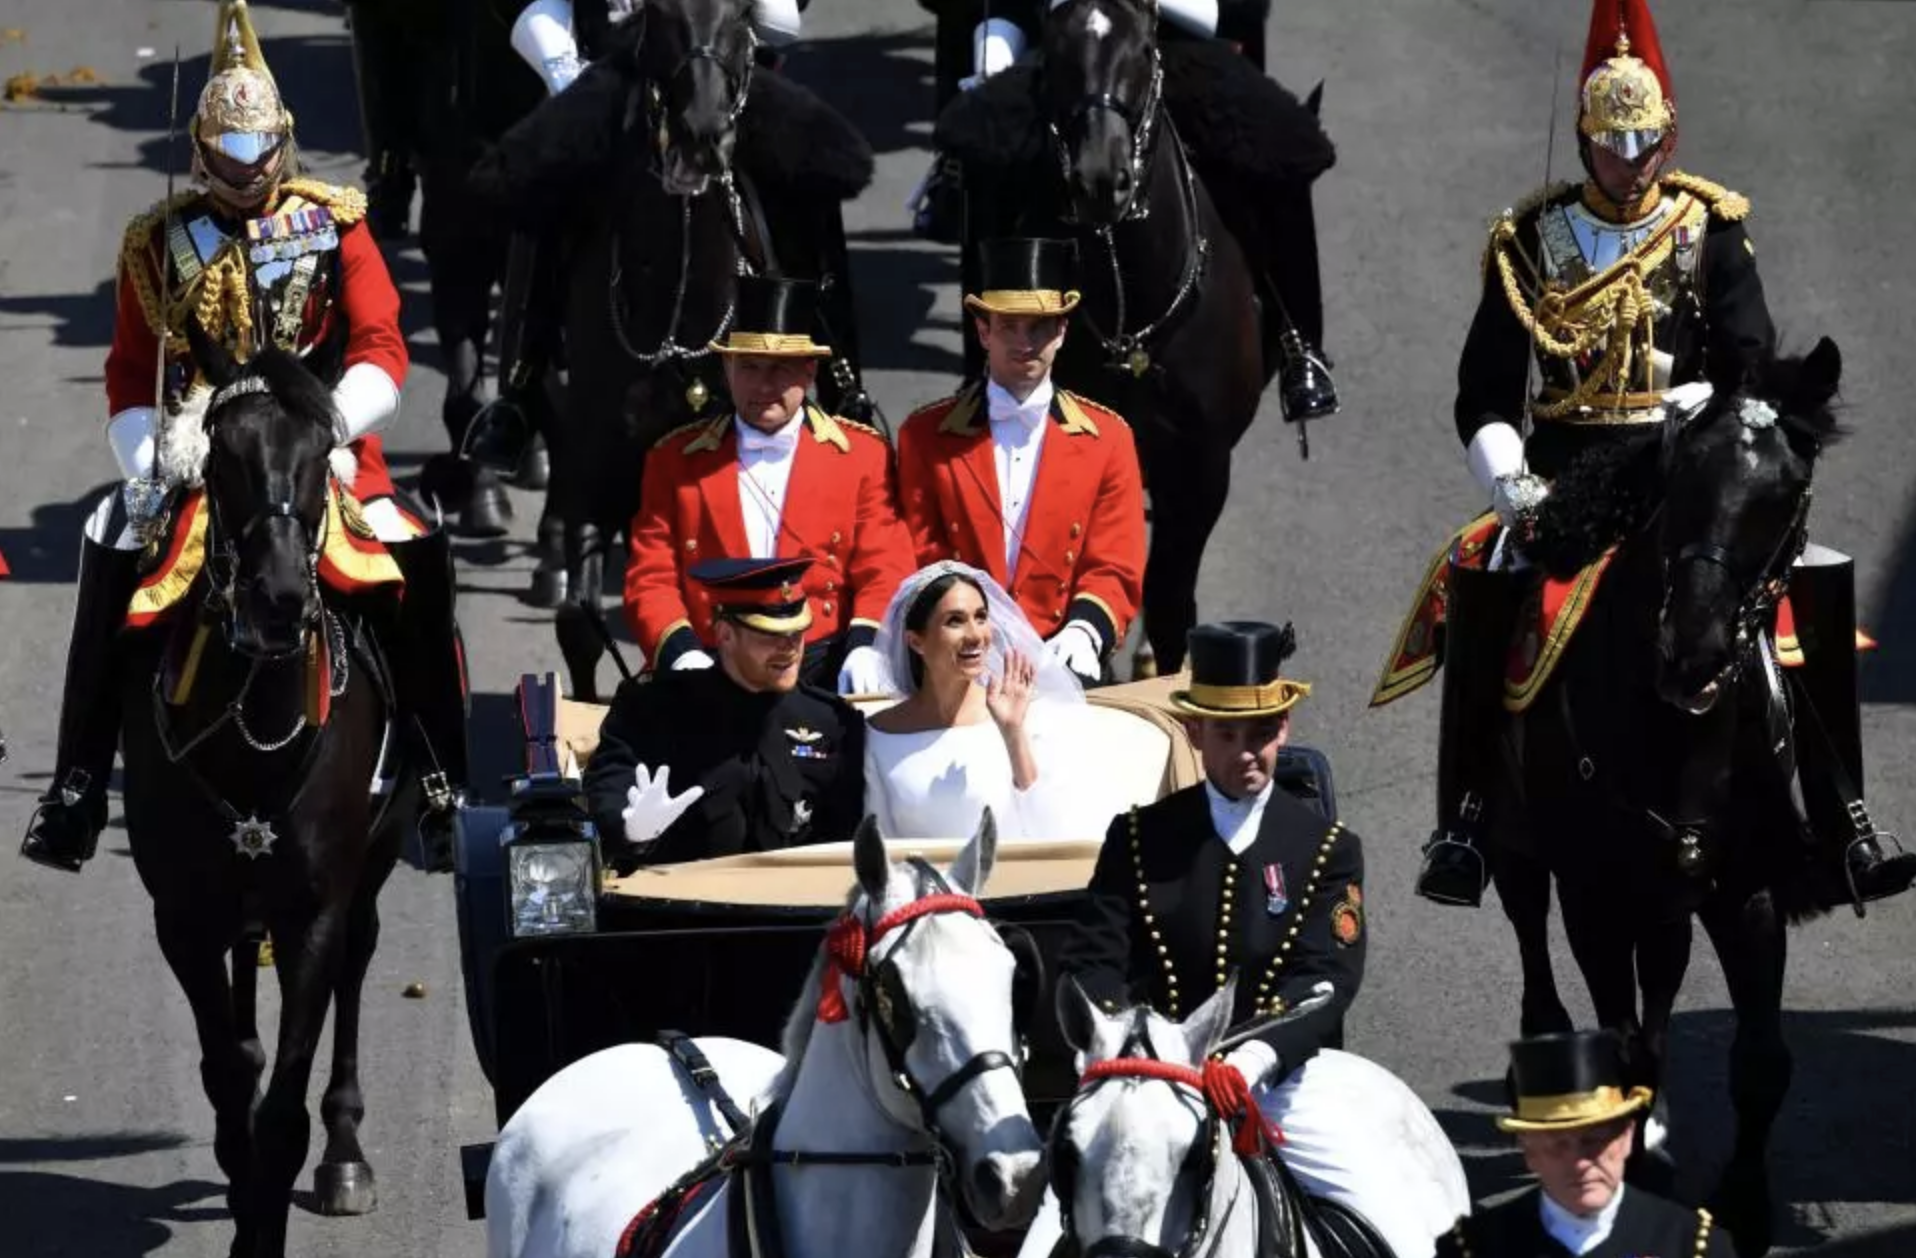 Peni Qio was part of the royal procession after the wedding.